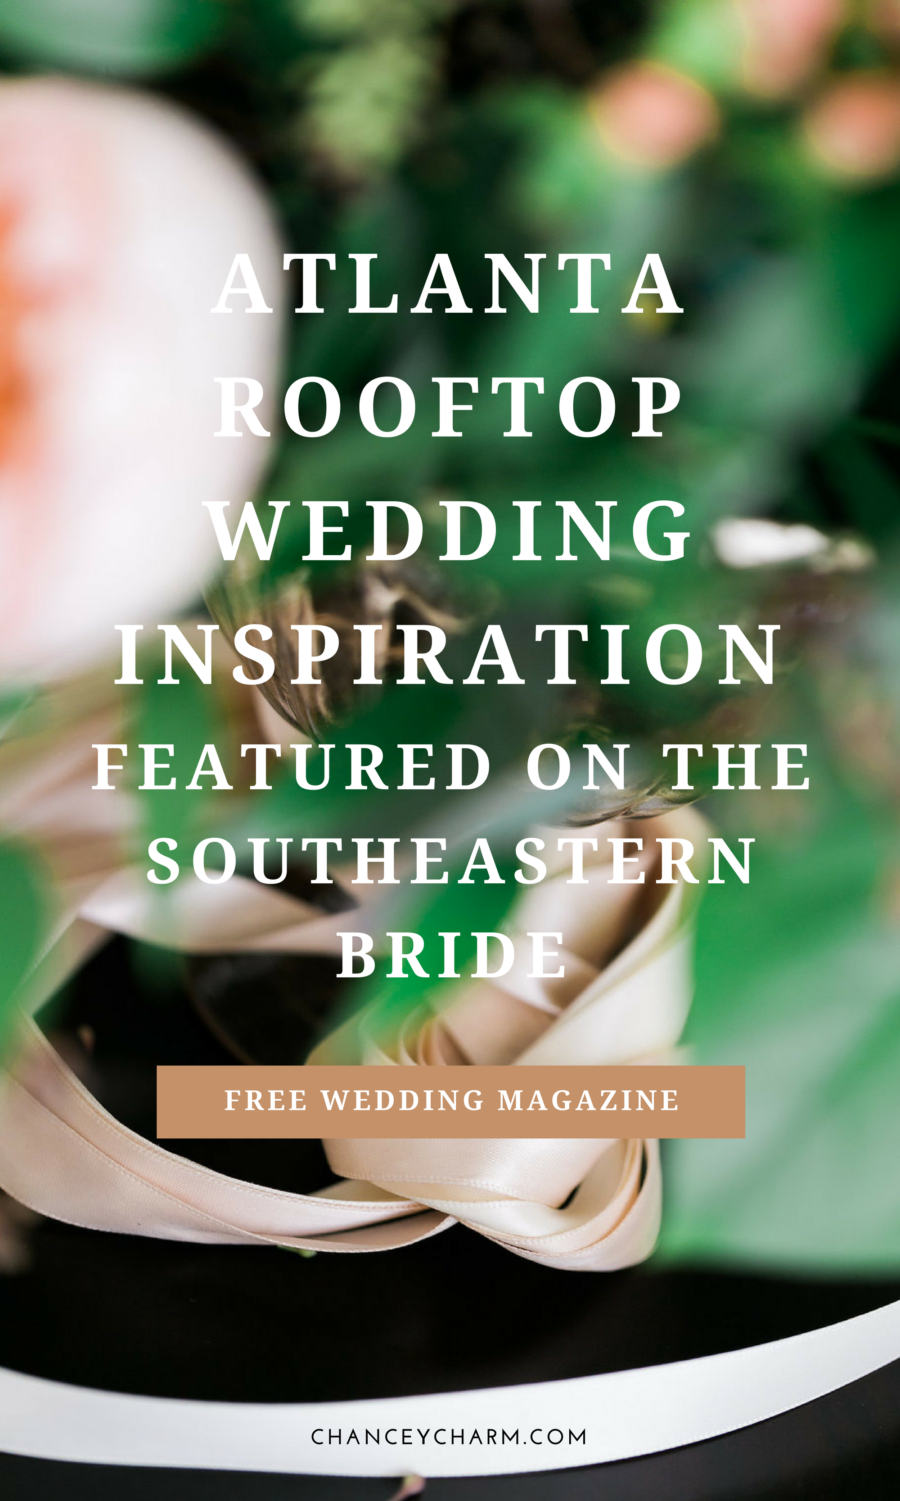 We're sharing some of our favorite photos from this romantic + modern Atlanta Rooftop Wedding Inspiration Shoot that was featured in The Southeastern Bride Magazine. #atlantawedding #atlantaweddingplanner #weddingplanninganddesign #weddingplannercareer #chanceycharm